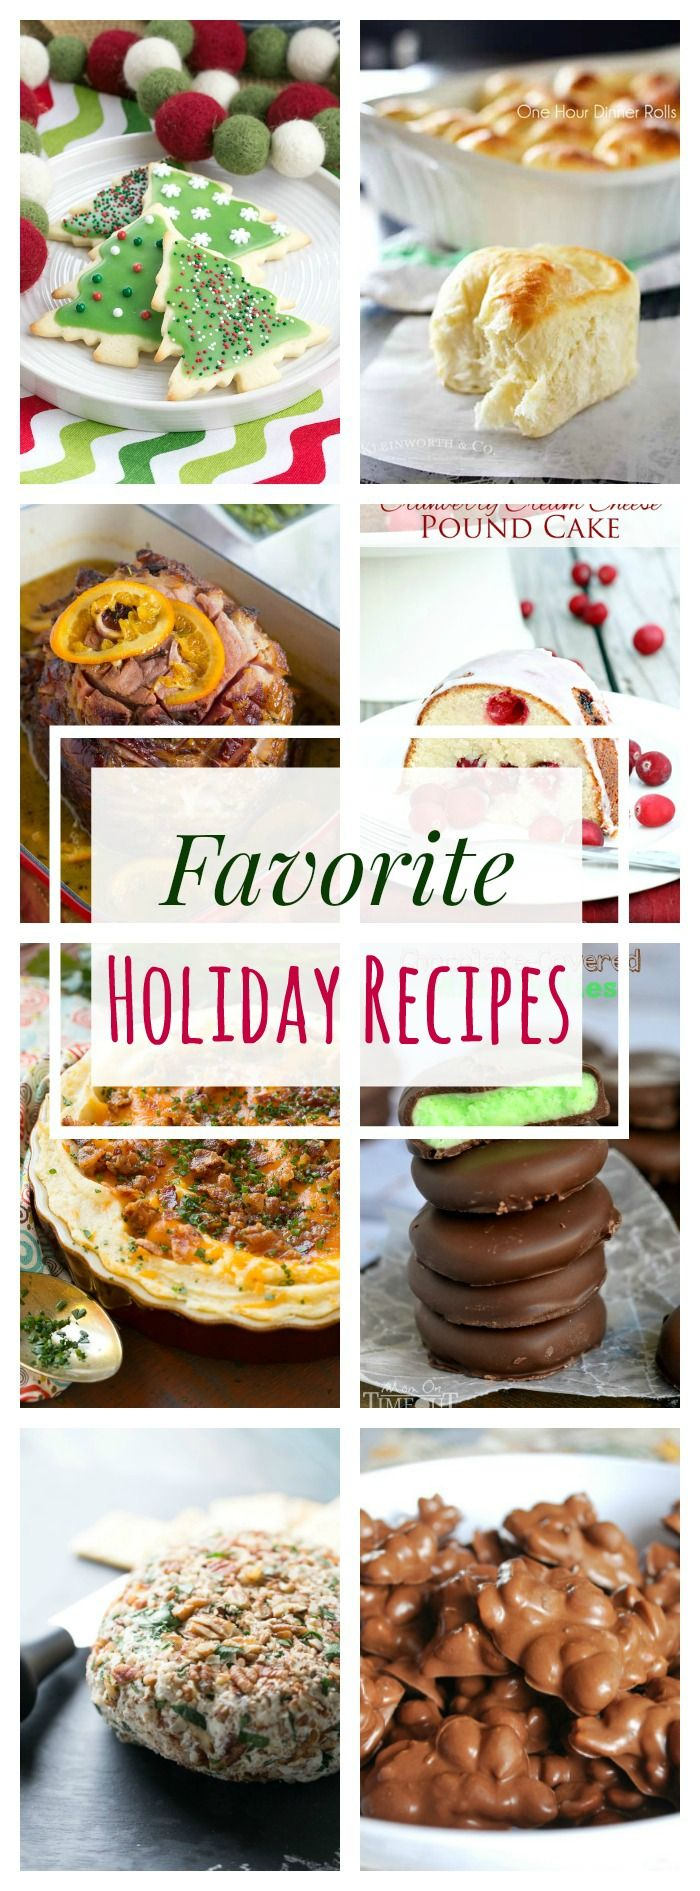 Favorite Holiday Recipes - cookies, candy, hams, roasts, sides, appetizers, and everything for Christmas and beyond